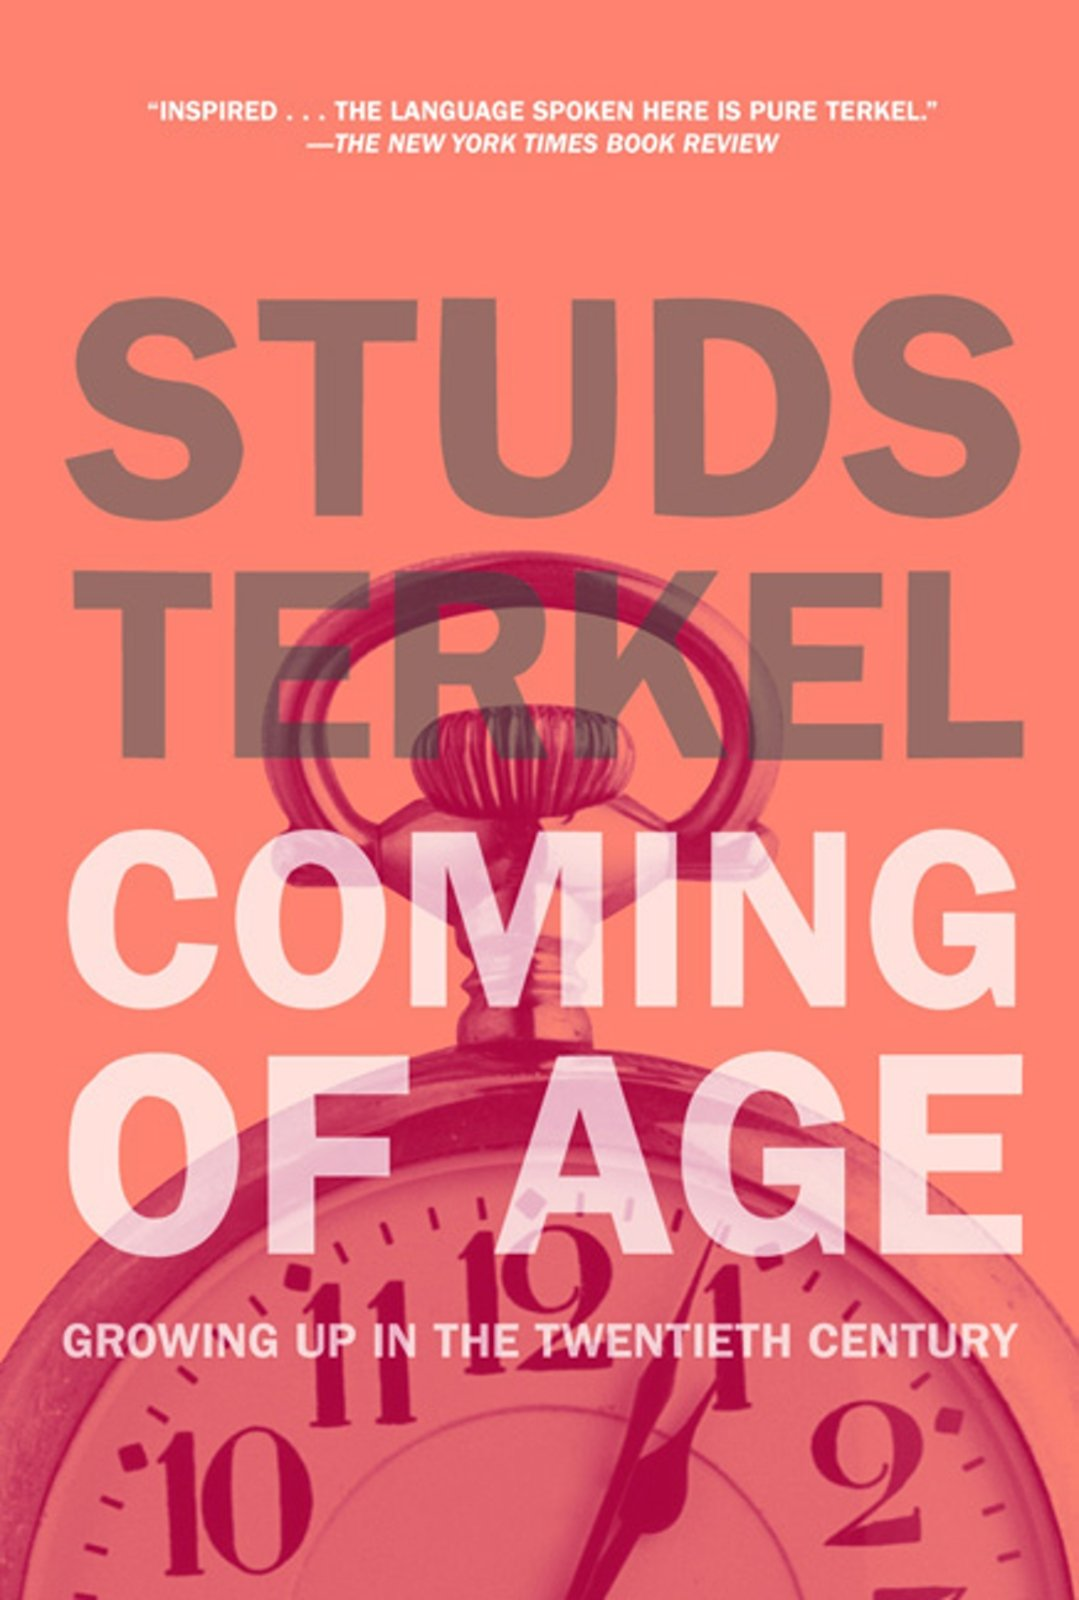 Coming of Age: Growing Up in the Twentieth Century